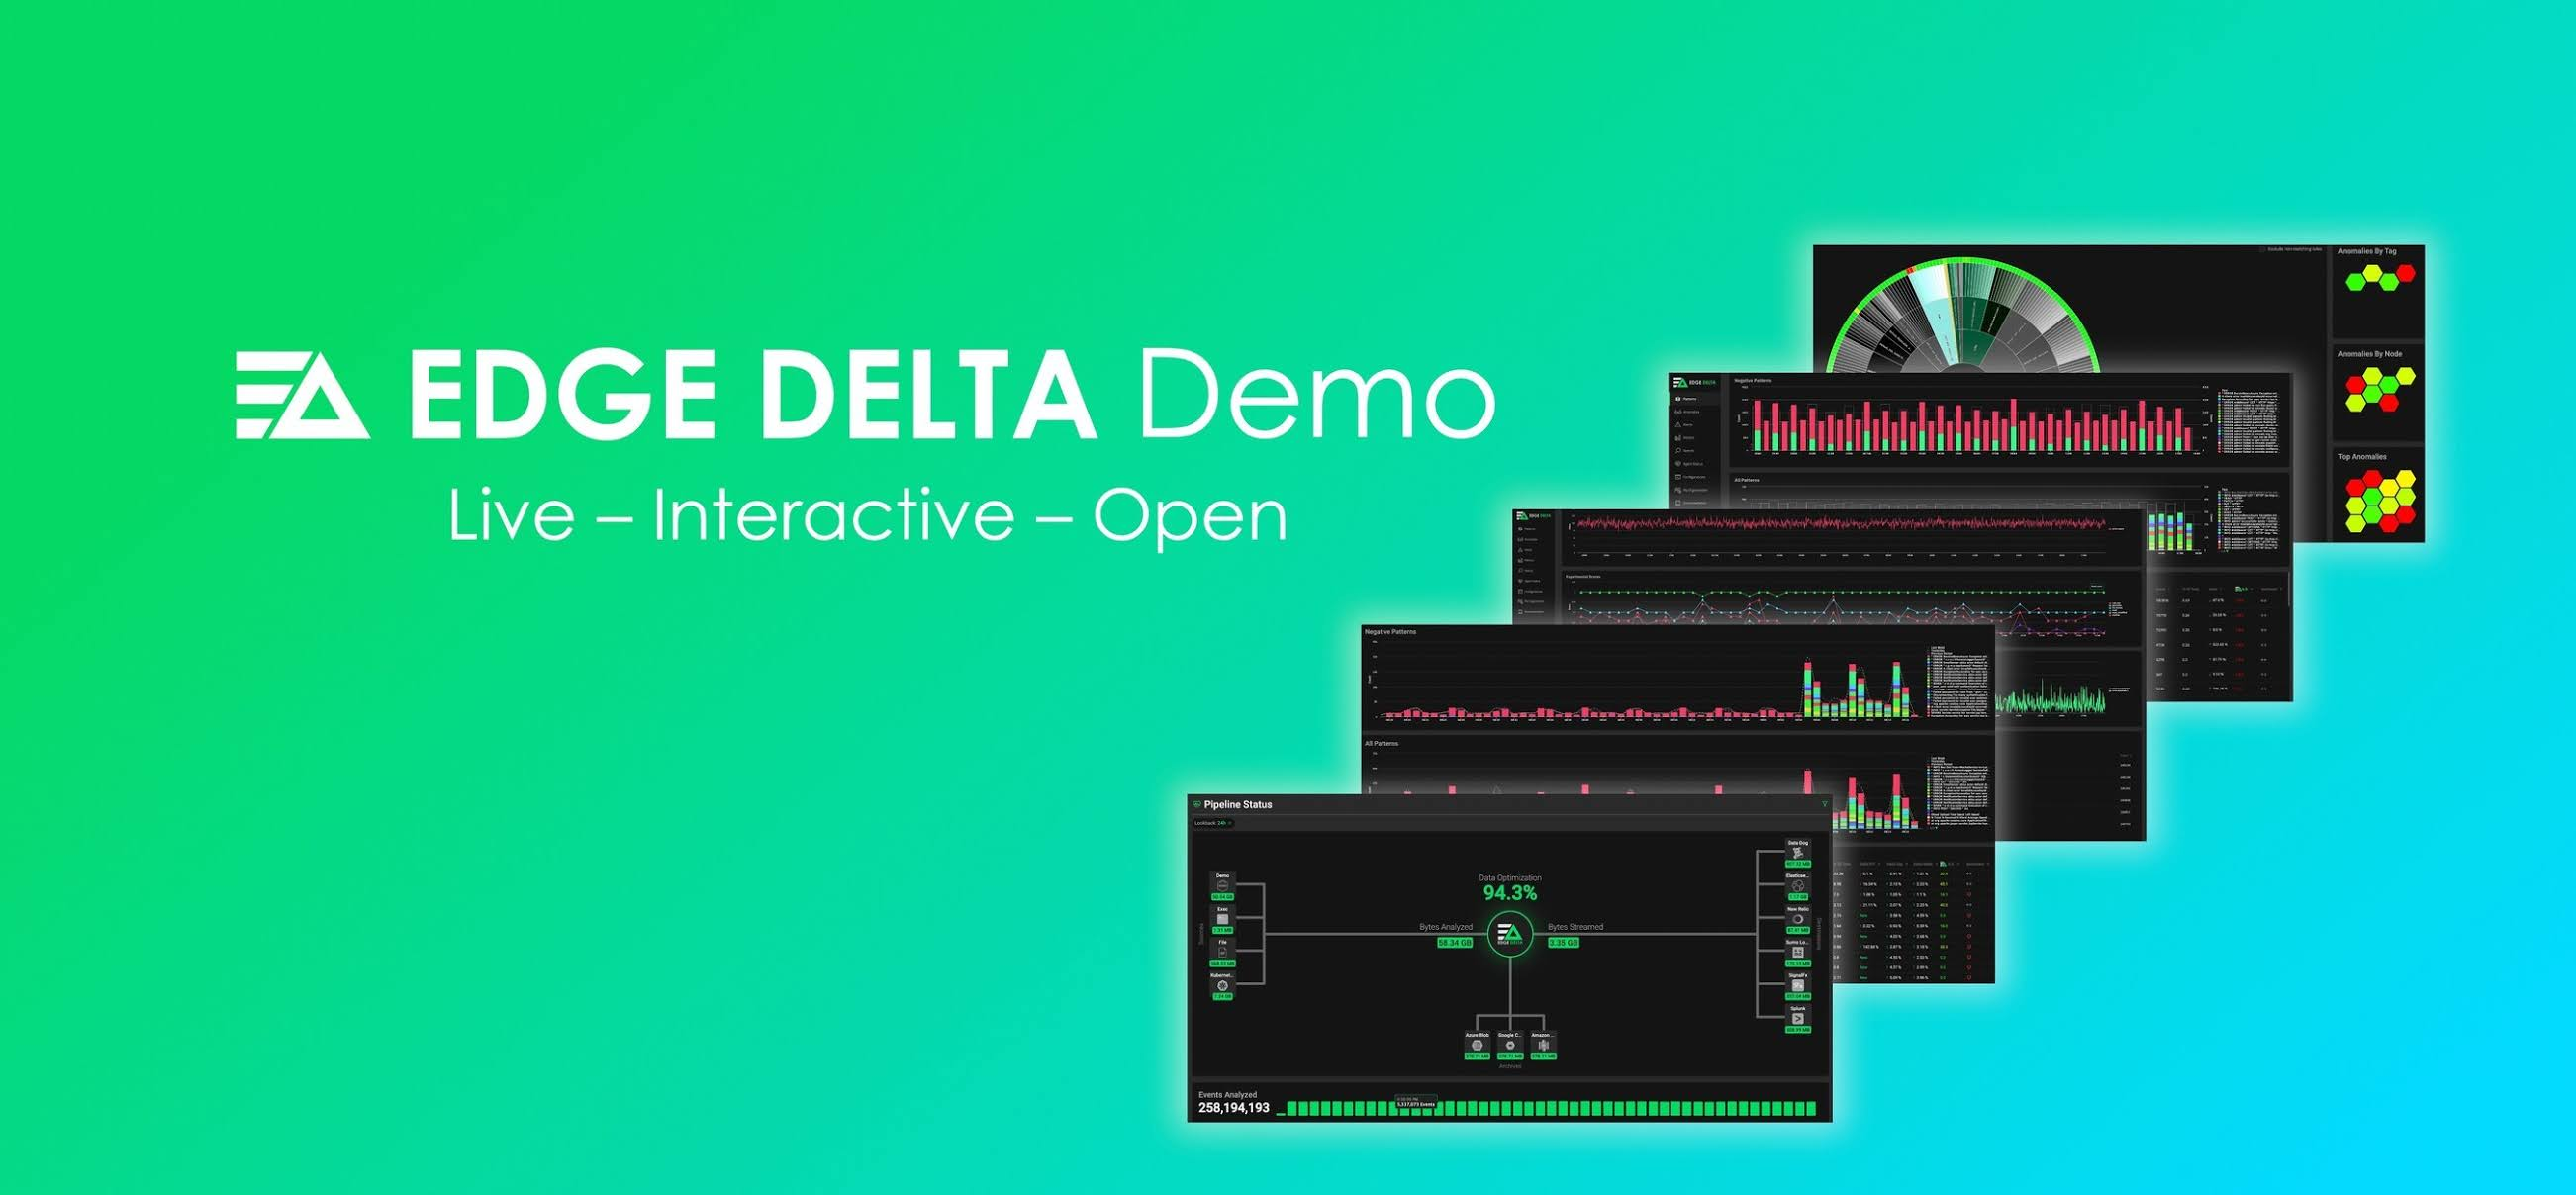 Edge Delta Announces Live, Interactive, Open Environment for Free and Unlimited Exploration